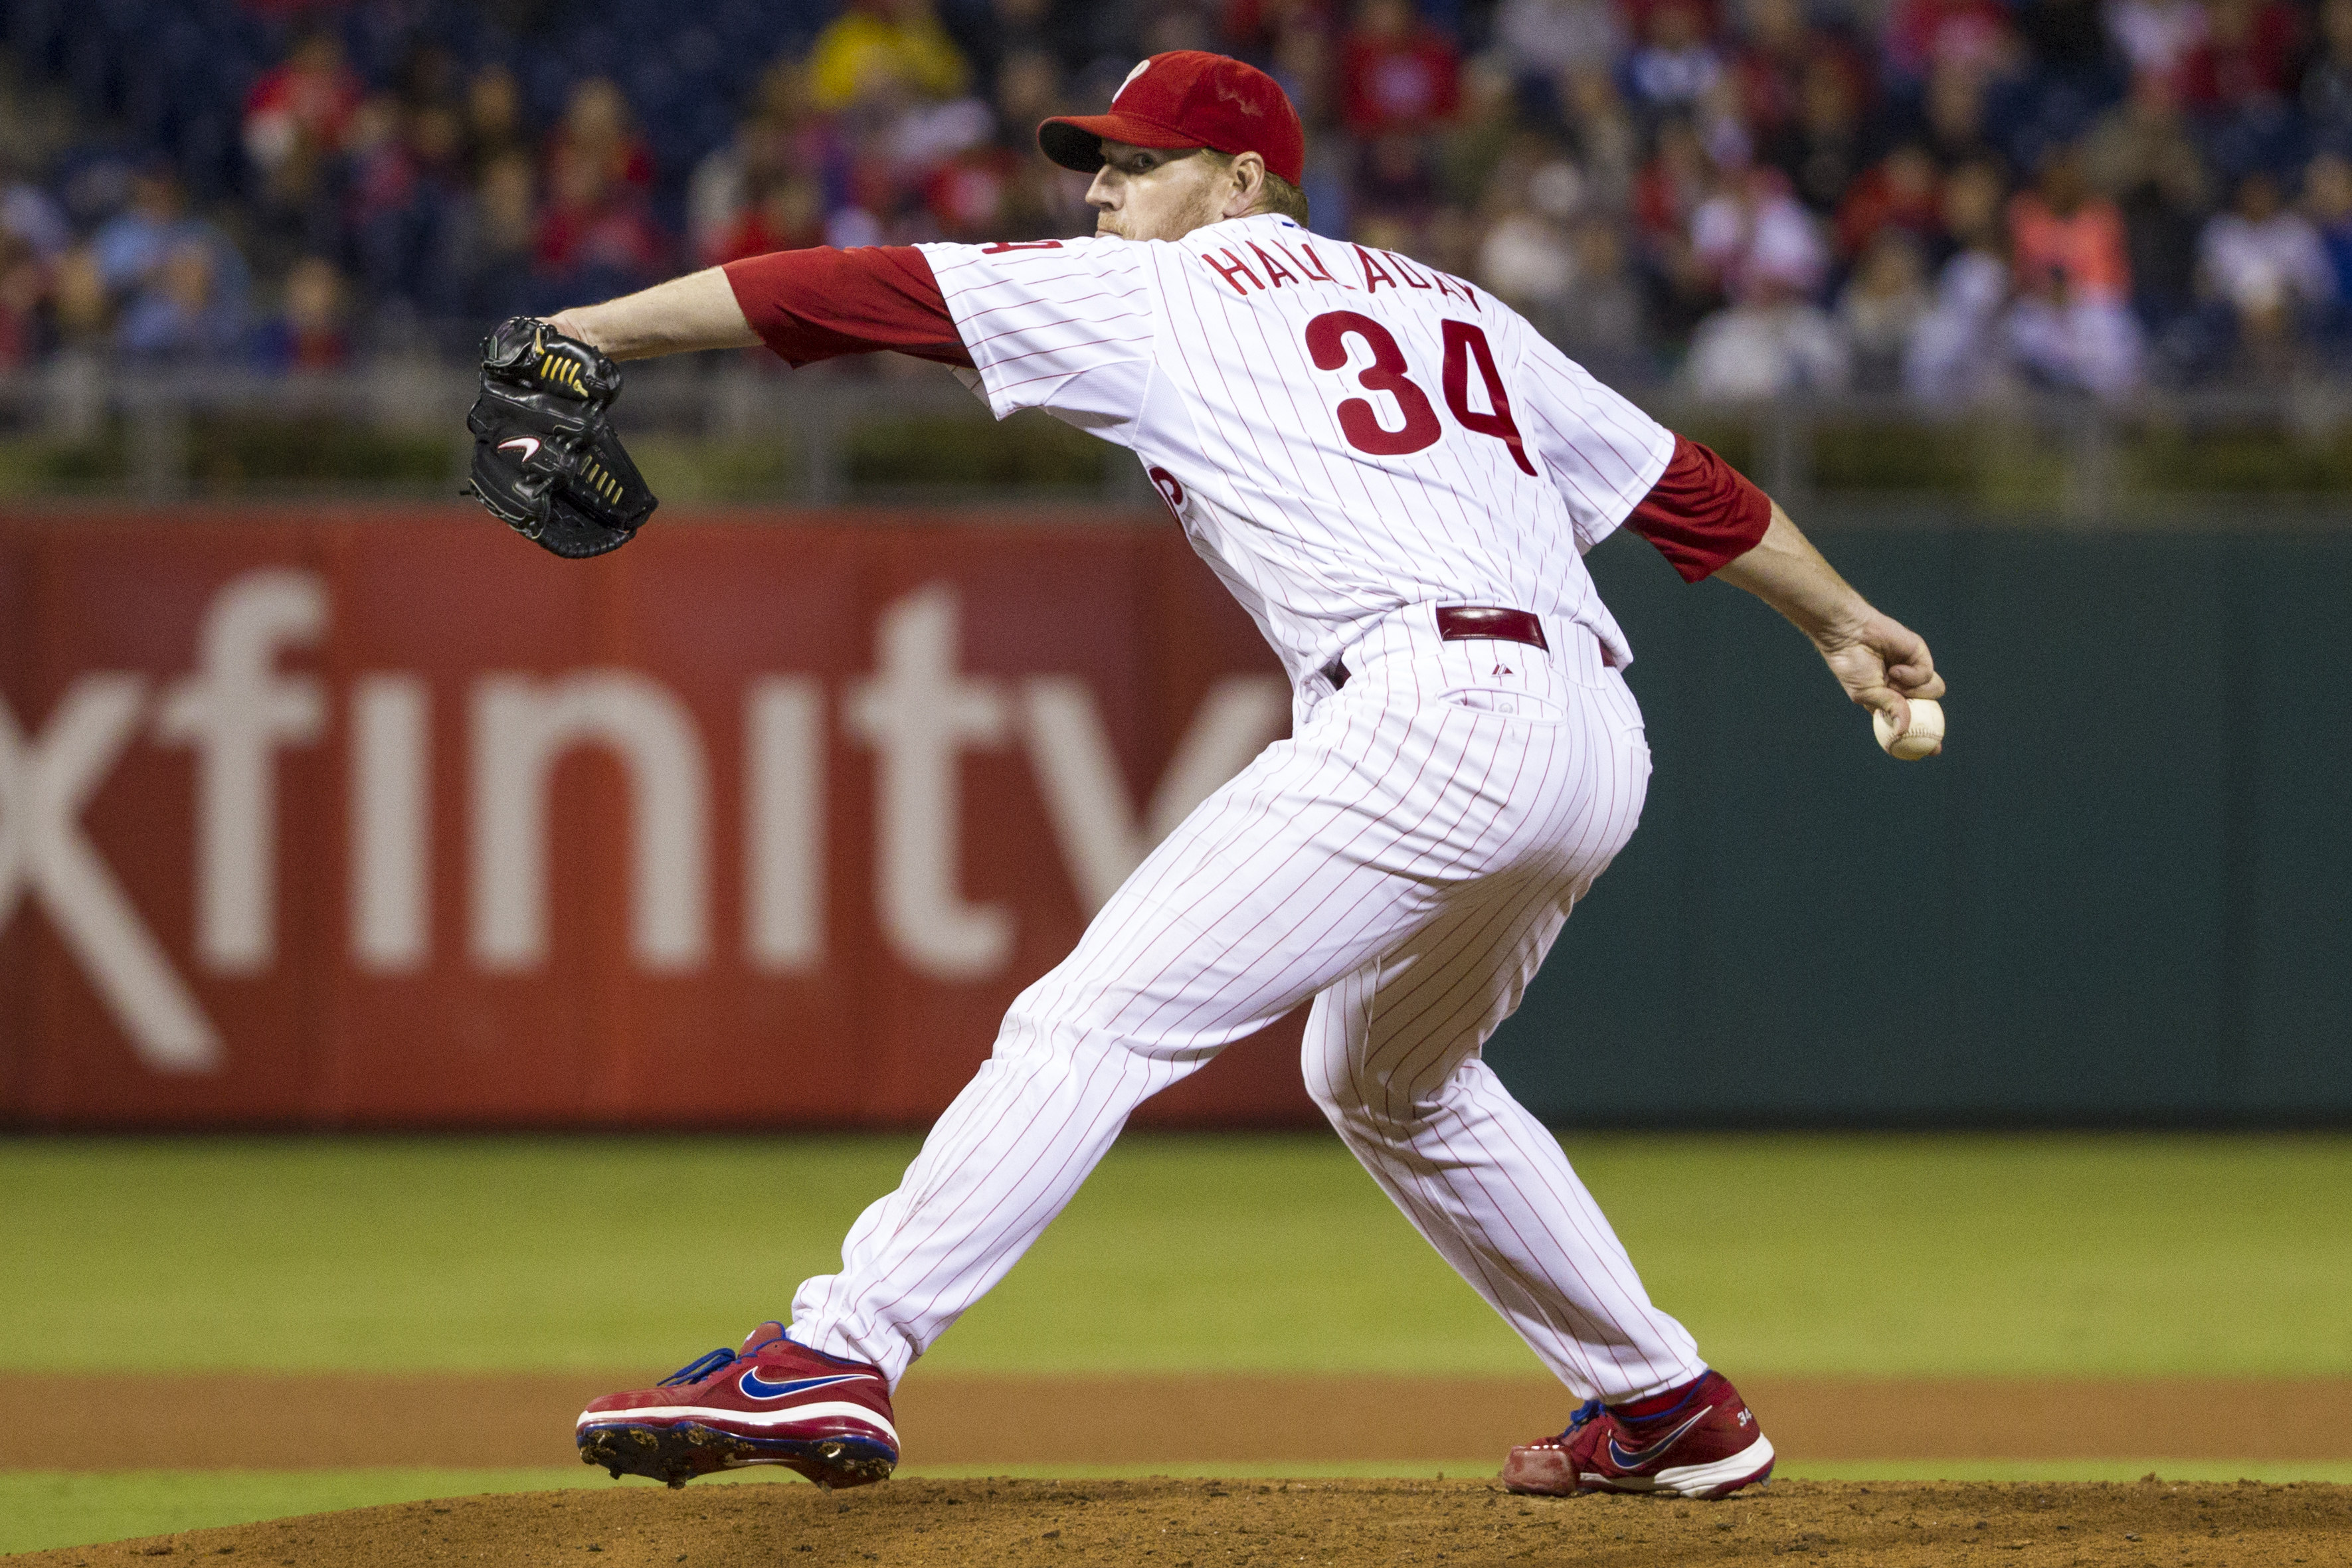 Roy Halladay on the mound for the Phillies in September 2013.